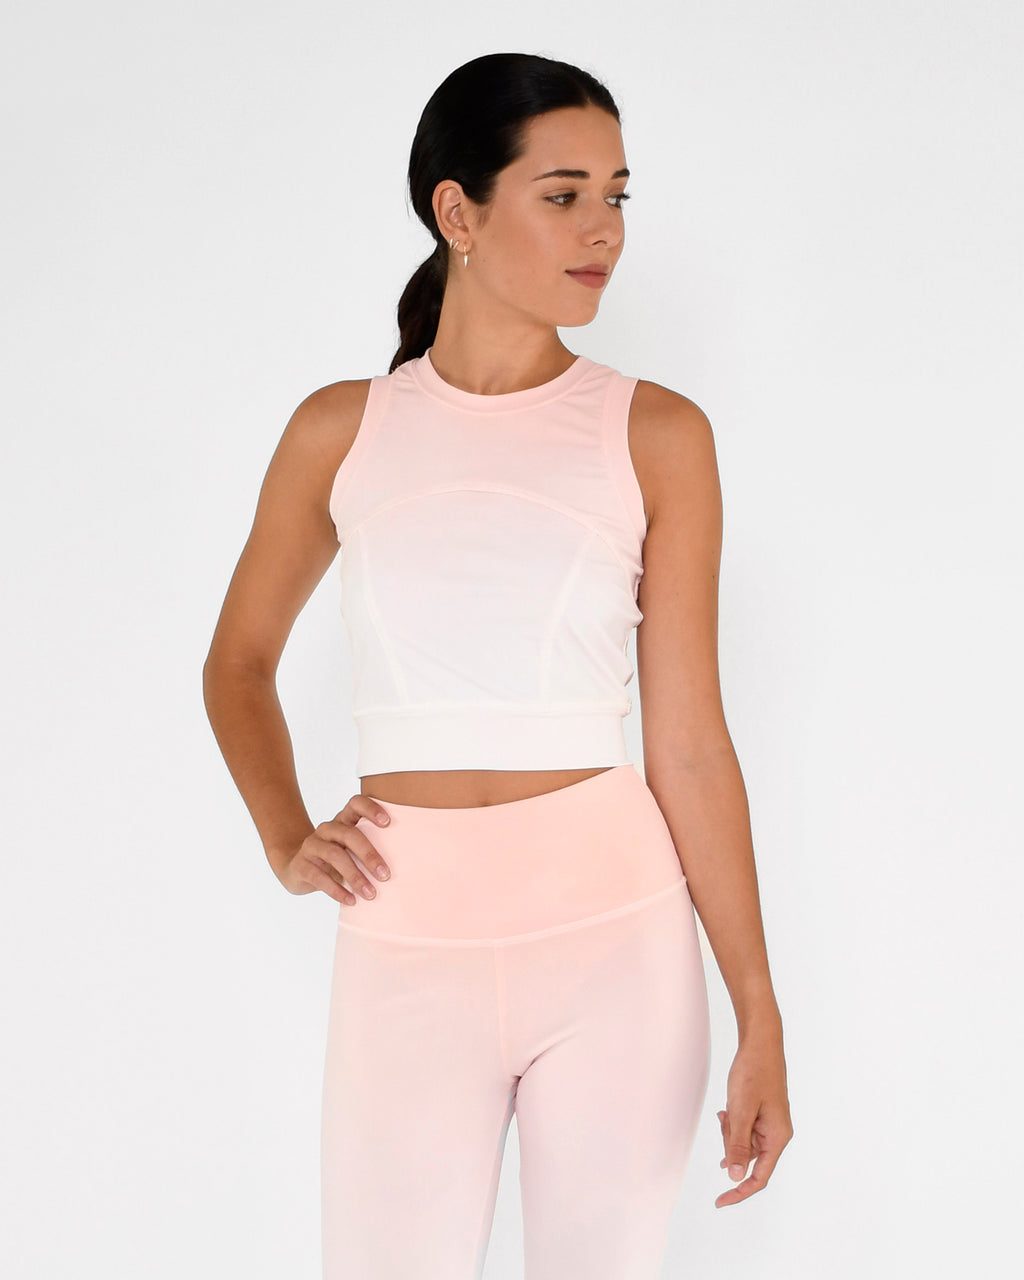 CT19043 - OMBRE SPORTS CROP TOP - accessories - activewear - Our ombre crop top features seam detailing and is crafted from high performance fabric. This lightweight piece will keep you cool when you workout - both in temperature and style. Add 1 line break Stylist tip: Pair with our matching leggings or joggers for a complete set.